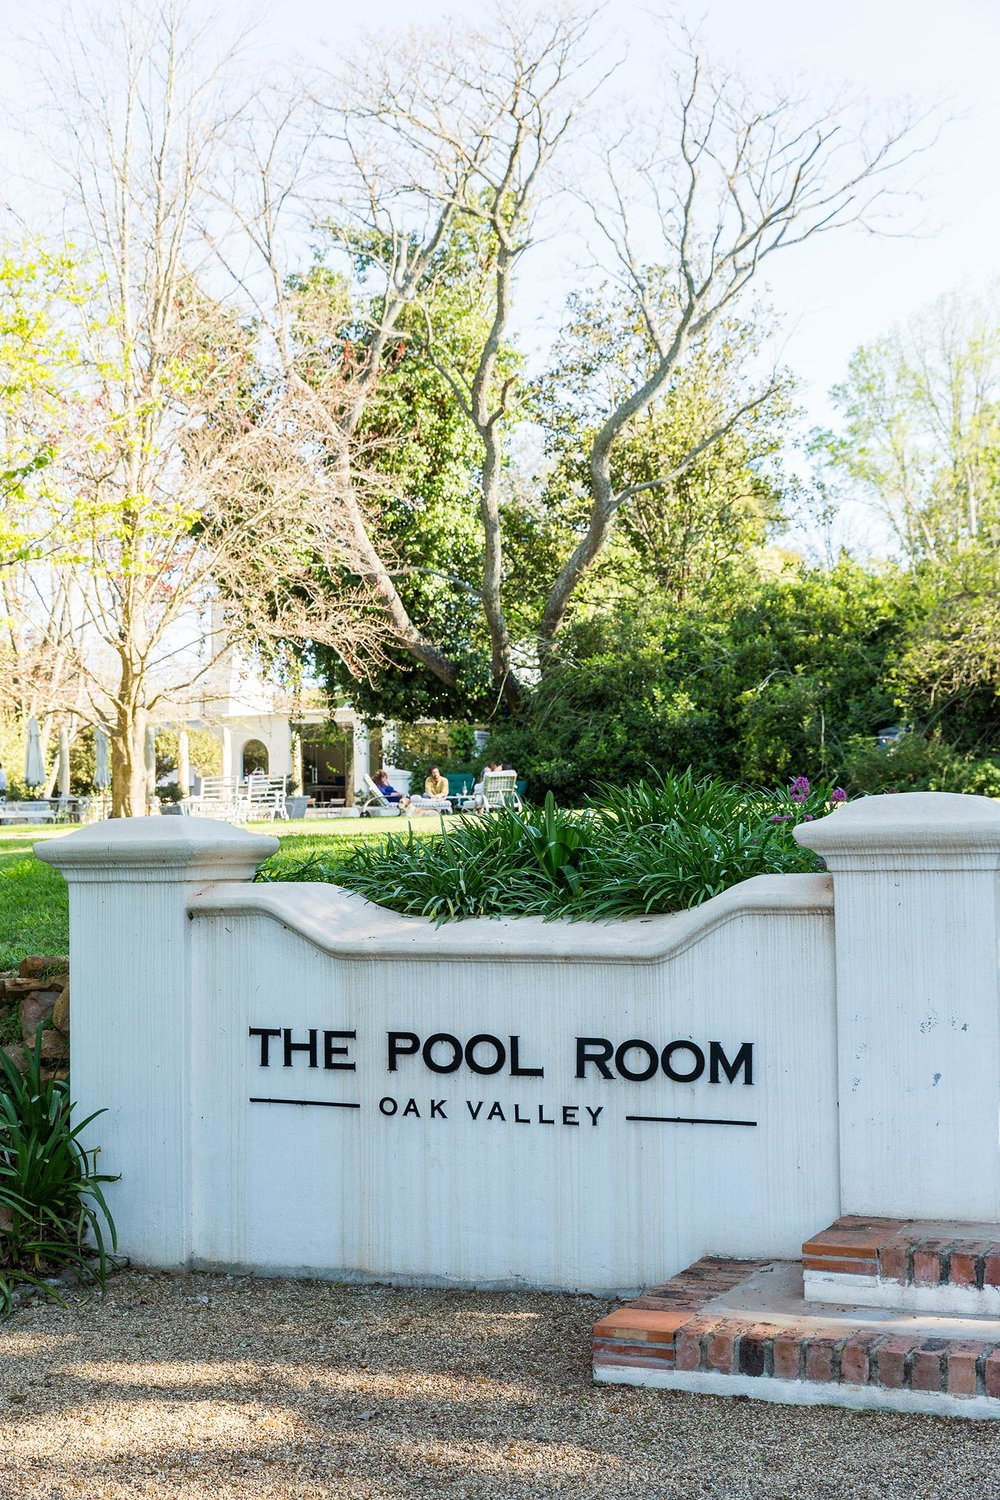 The Pool Room at Oak Valley